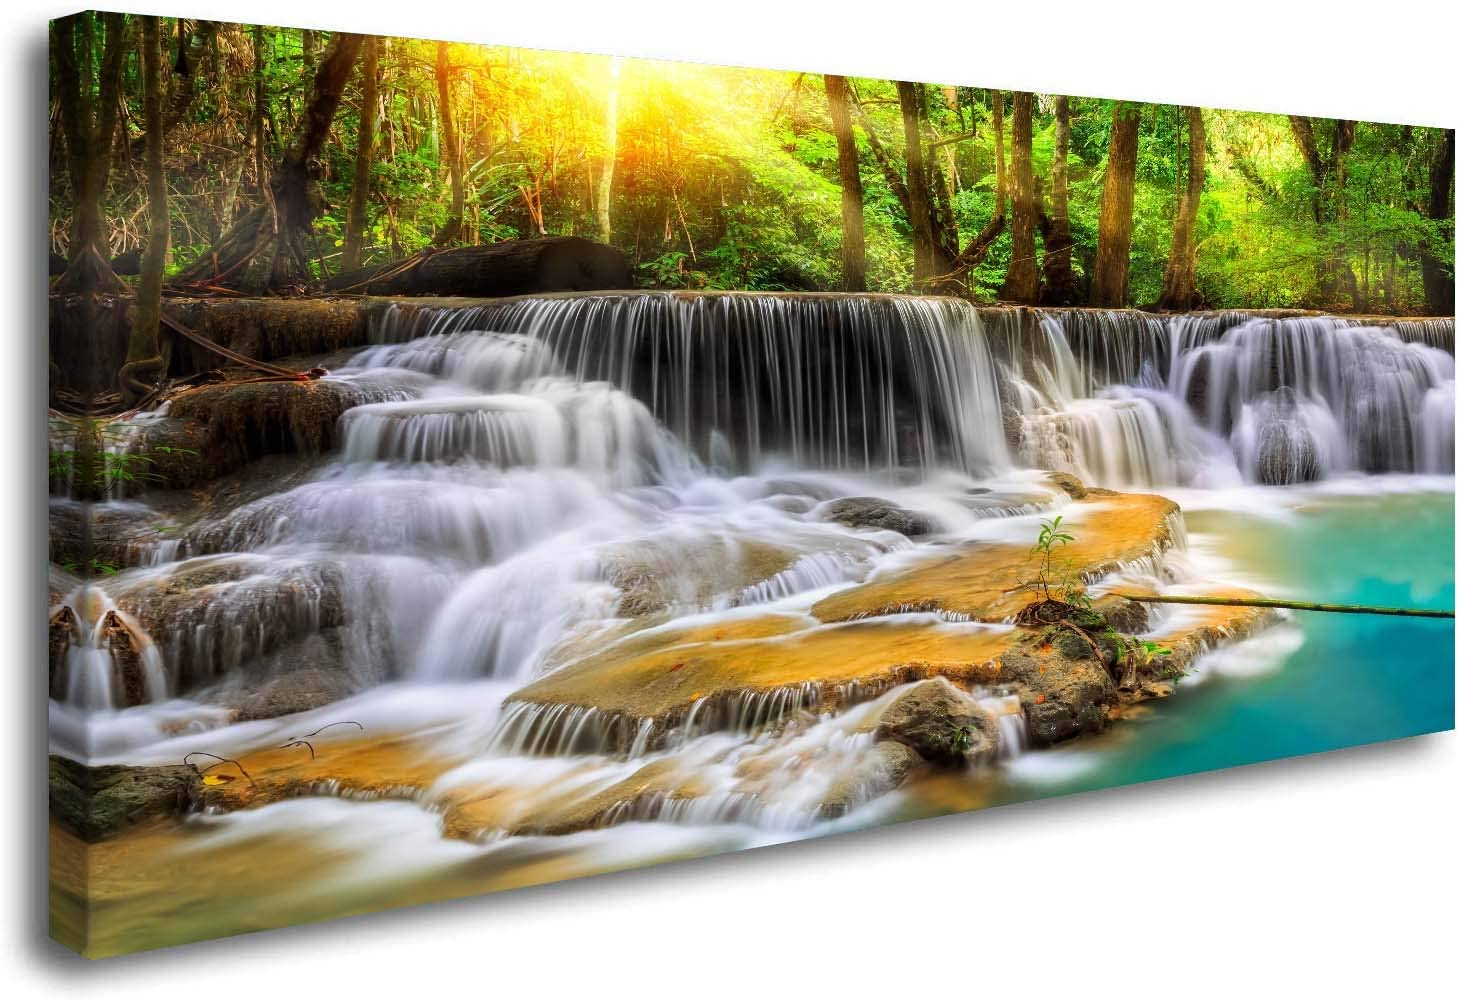 ArtHome520 Turquoise Fall Pond Home Decor Canvas Print Yellow Autumn Waterfall Lanscape Picture Wall Art Living Dining Room Decorations Modern Framed (20''x40'')